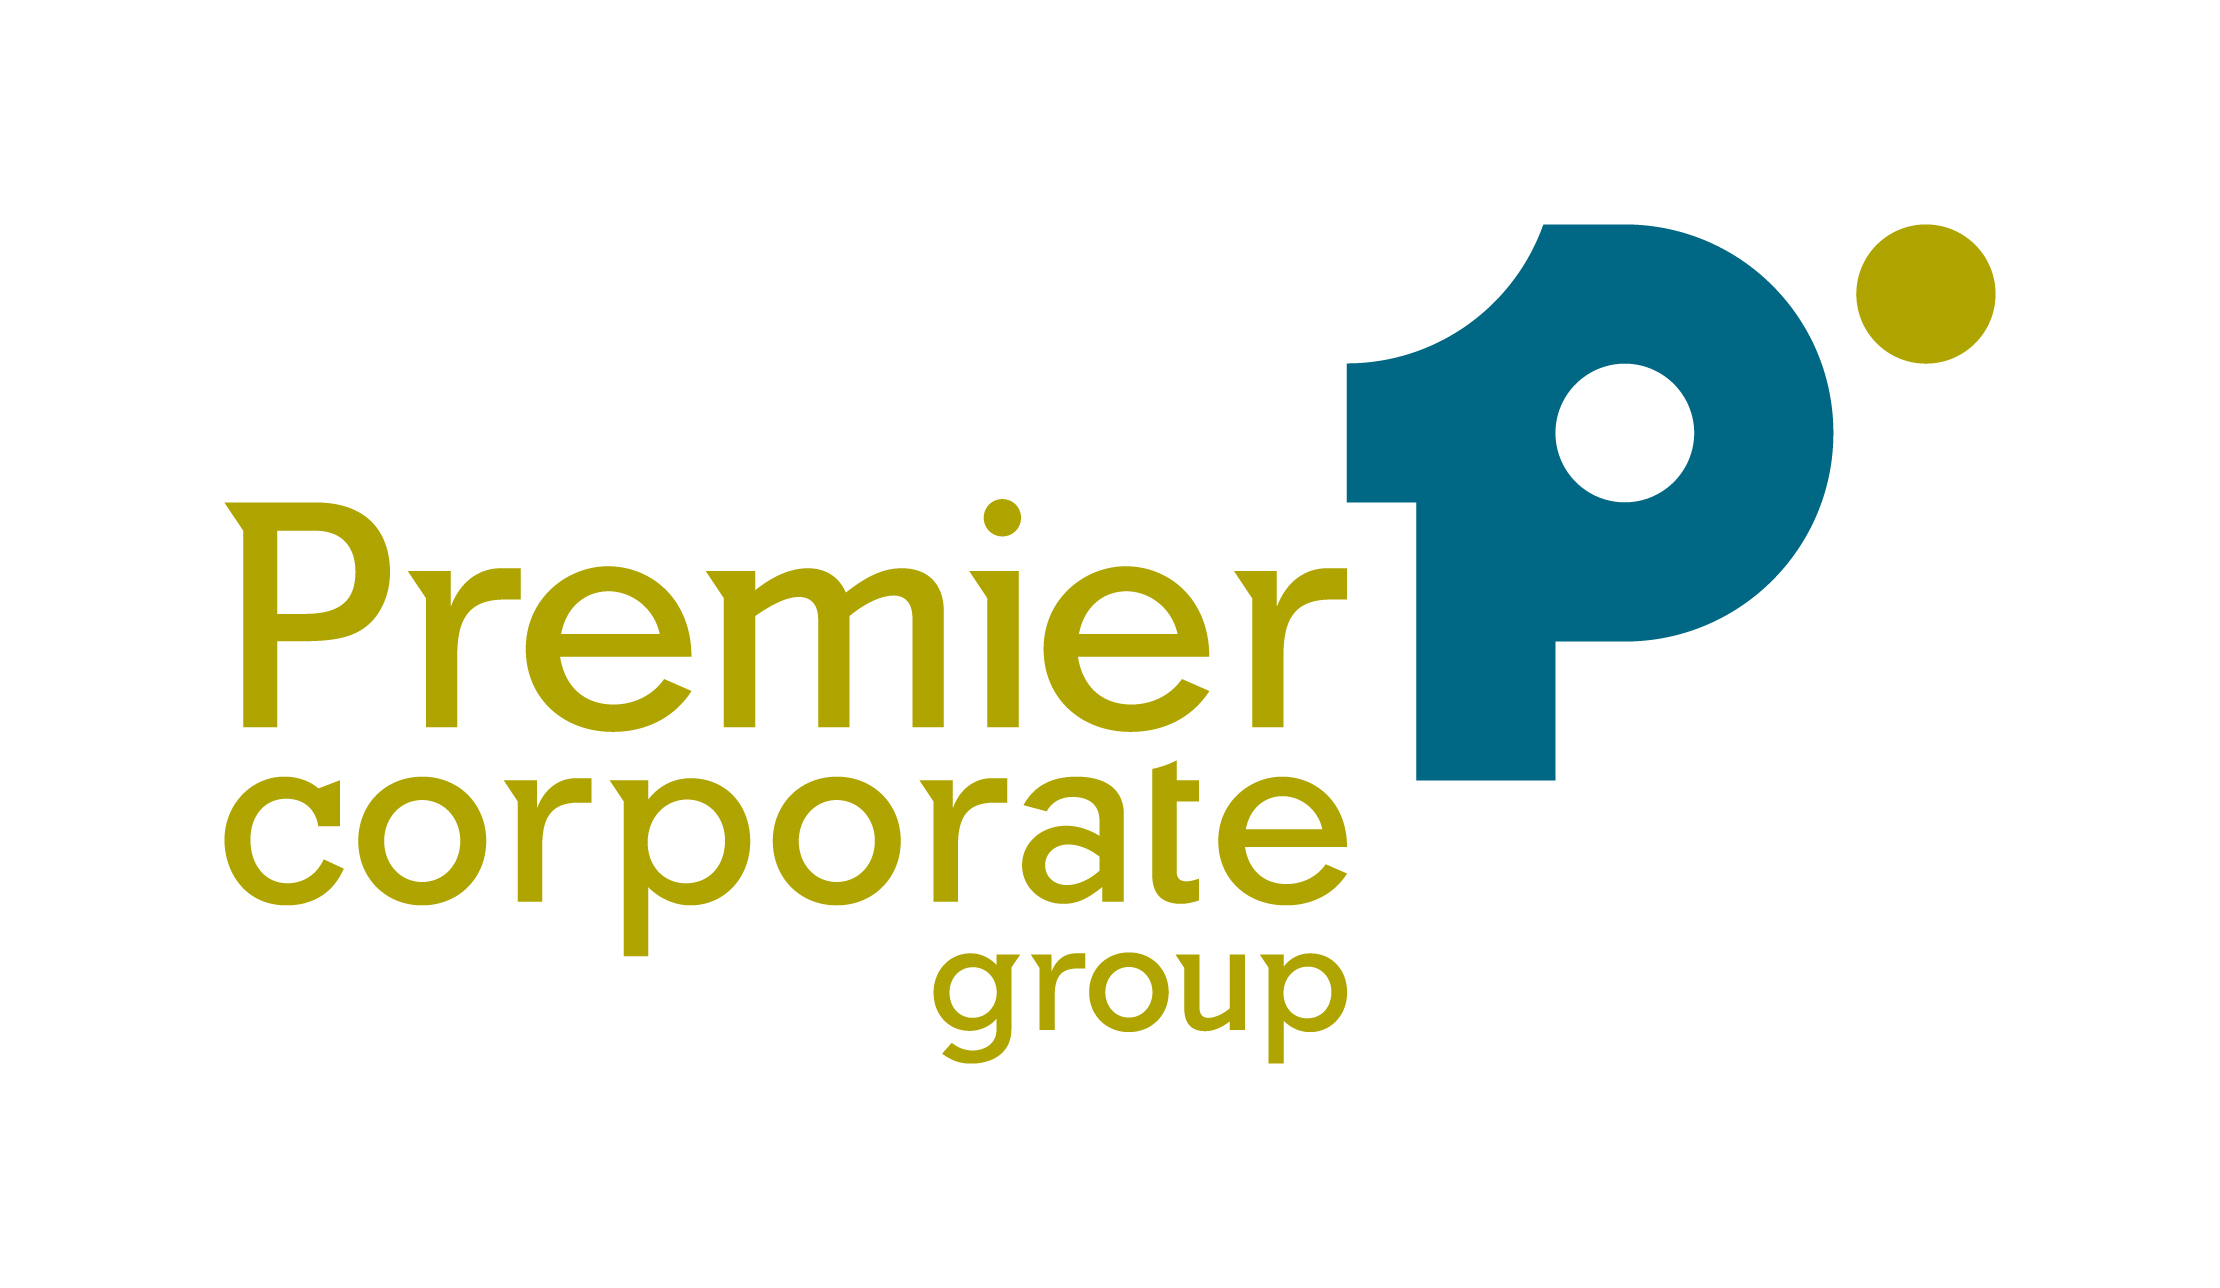 Premier Corporate Group